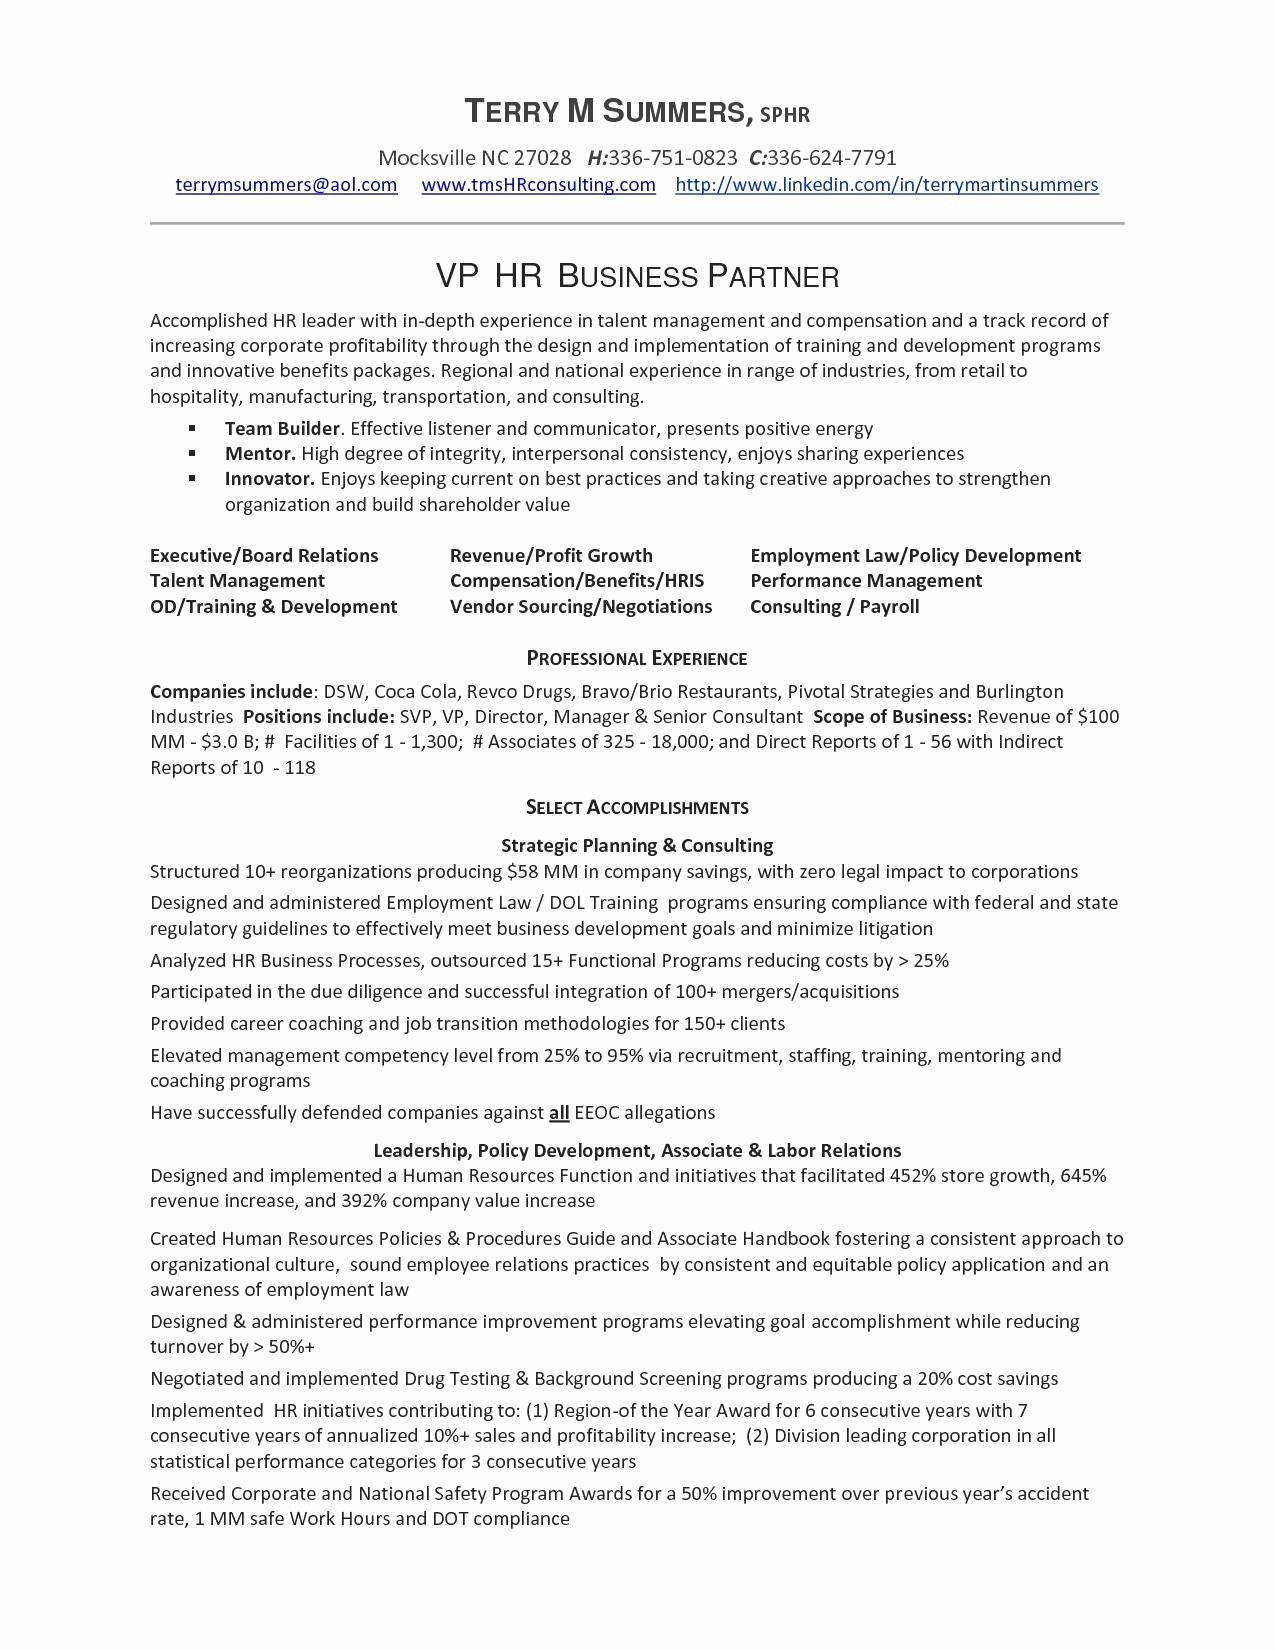 Accounting Resume Sample - Staff Accountant Resume Sample Awesome Sample Cover Letter for